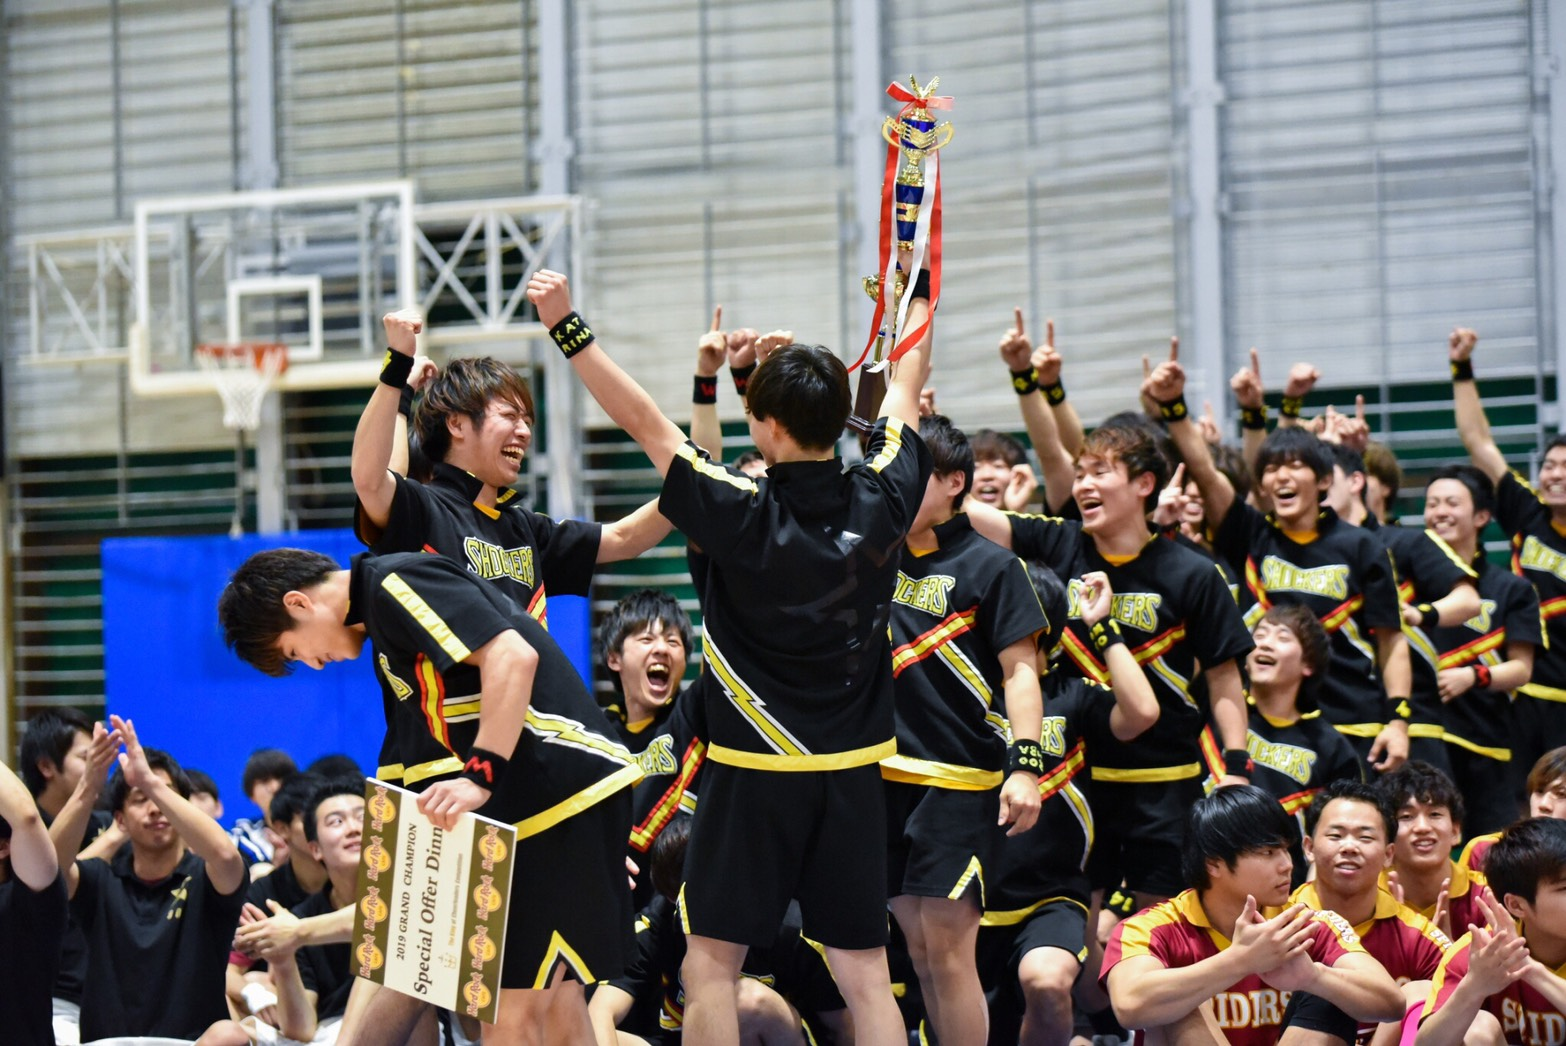 The King of Cheerleaders' Competition 2020